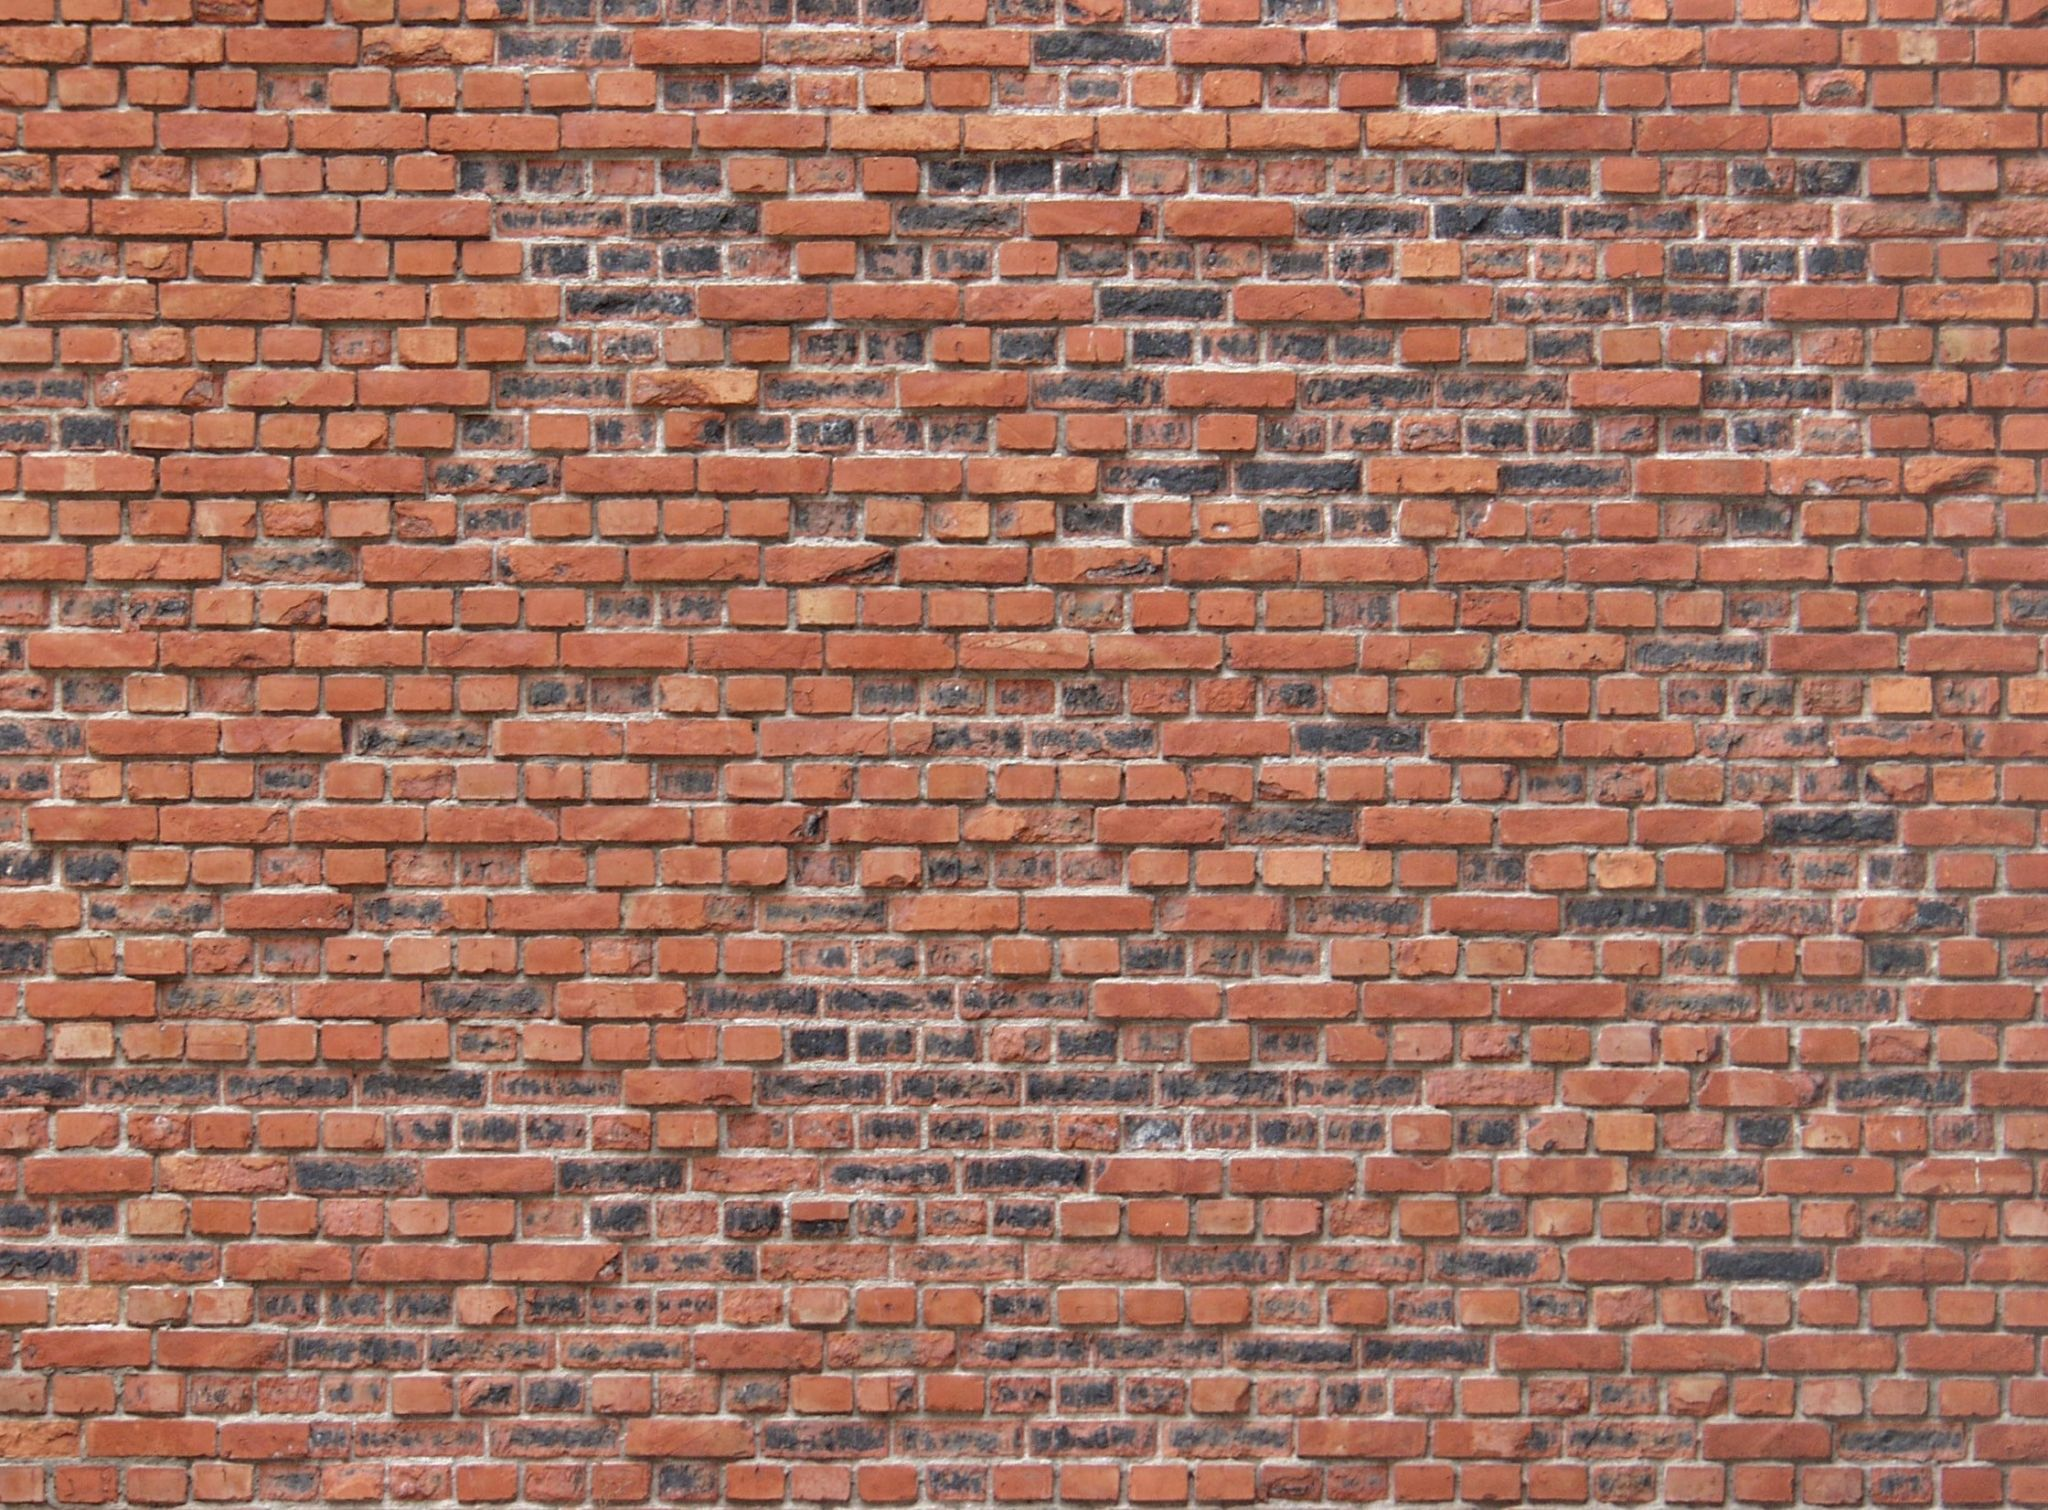 Brick High Resolution Desktop Backgrounds